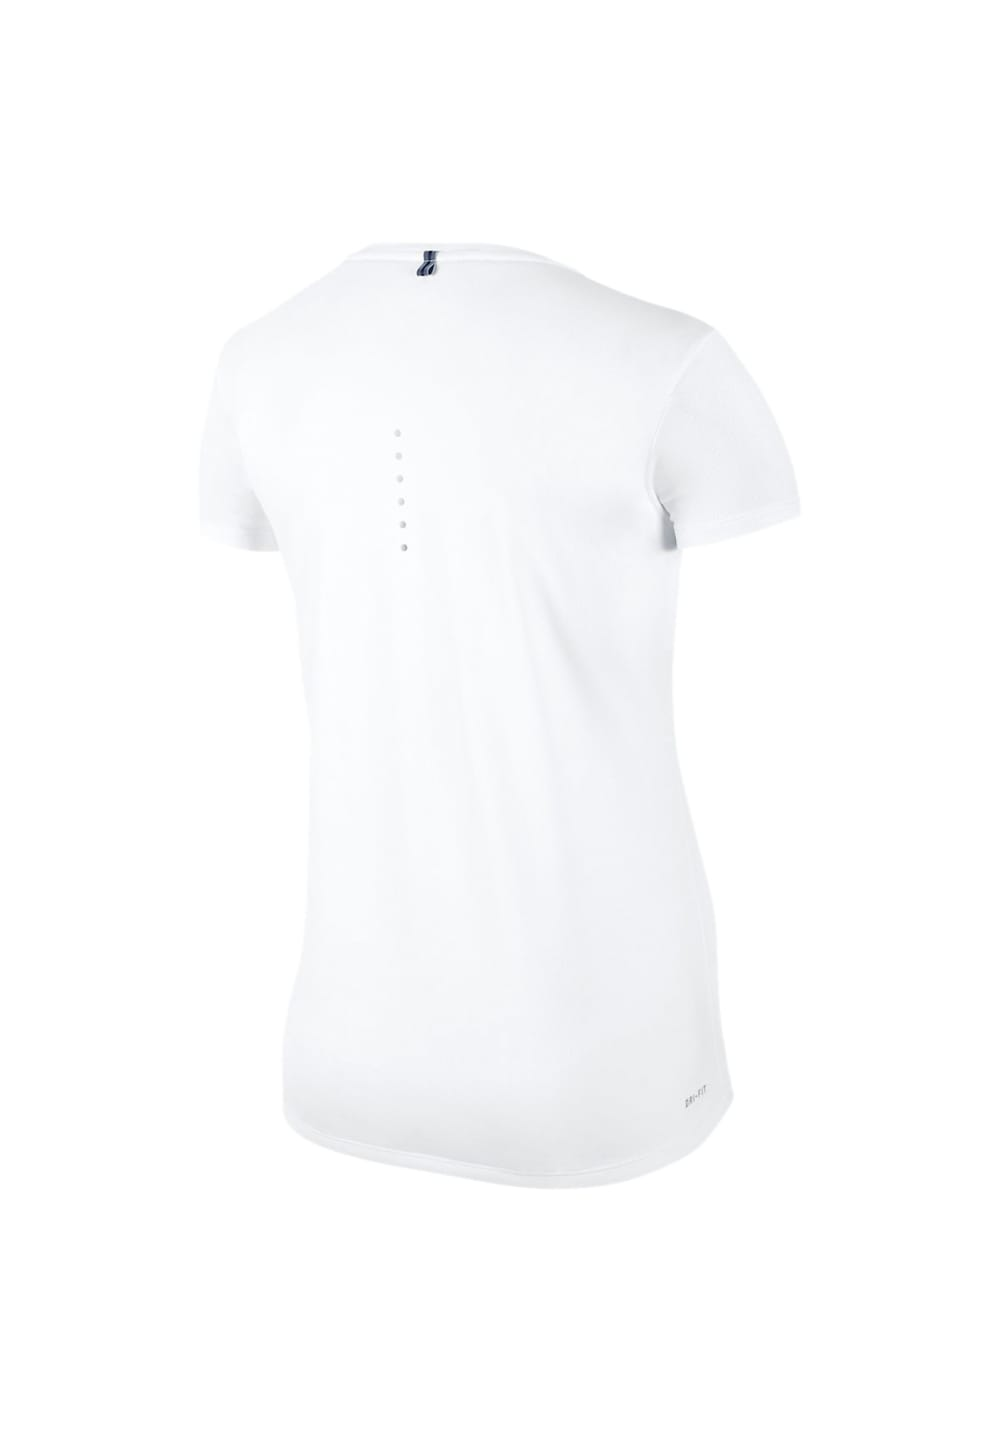 new high quality the best look for Nike Dri-Fit Contour Short Sleeve - Running tops for Women - White